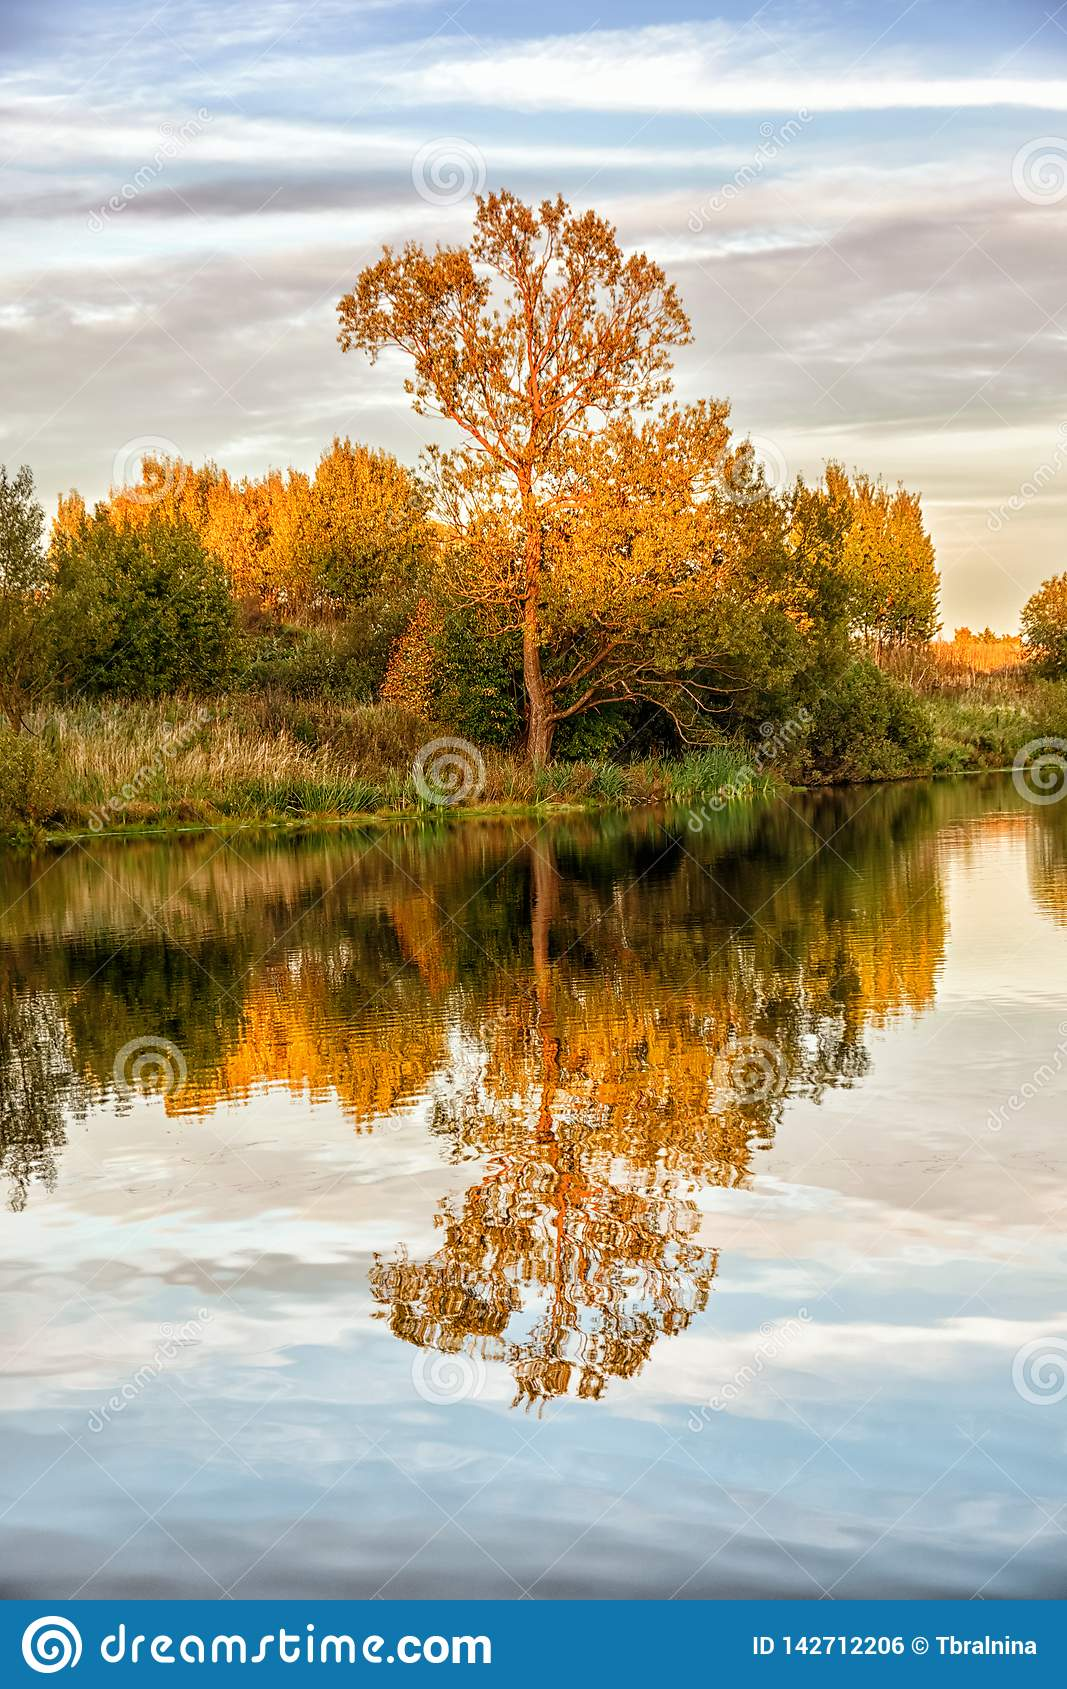 Autumn landscape with water, colorful trees